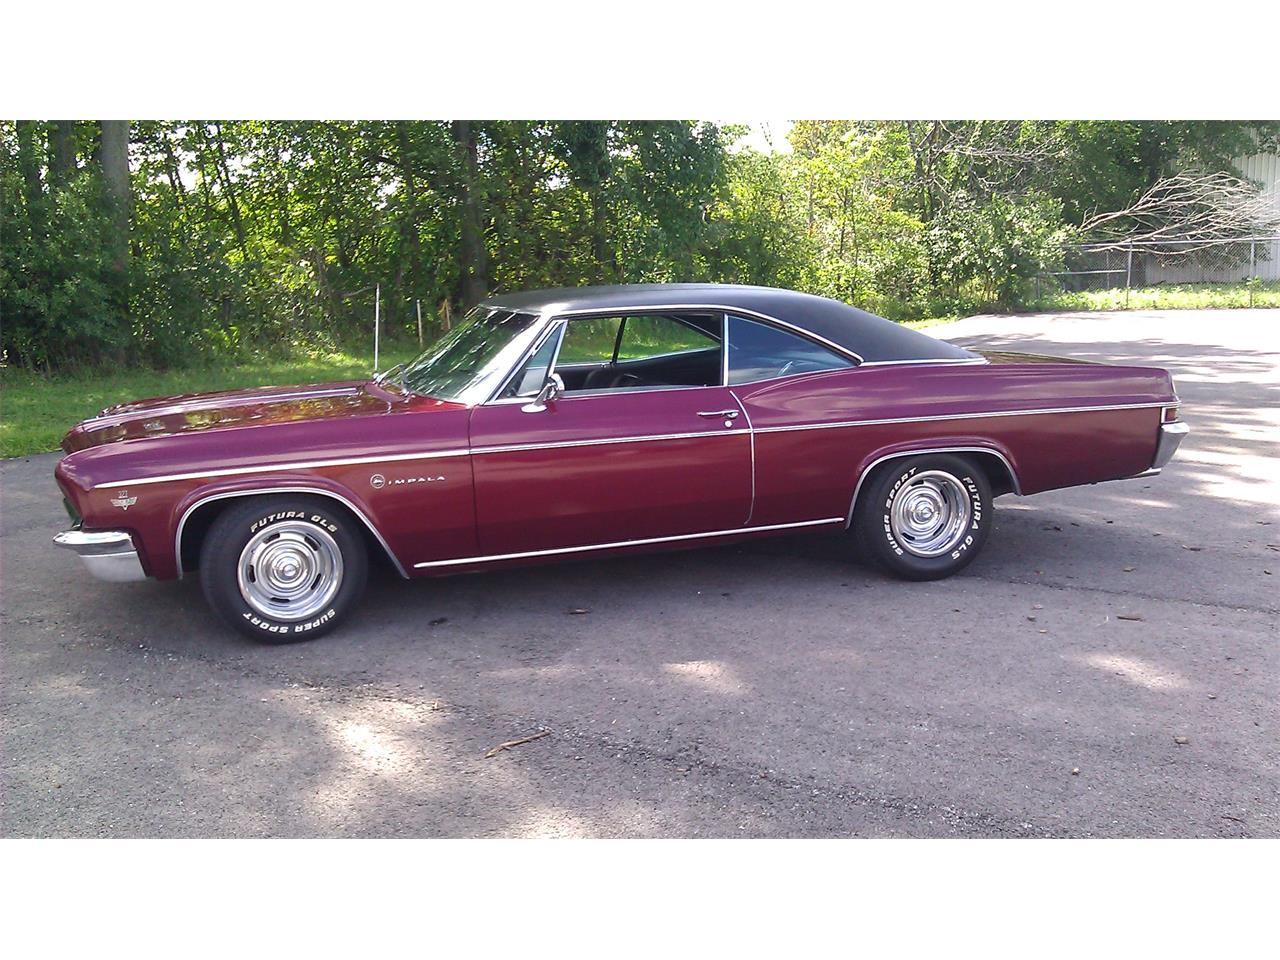 1966 Chevrolet Impala Ss For Sale Cc 1020581 Chevy Suspension Large Picture Of 66 Lvhh